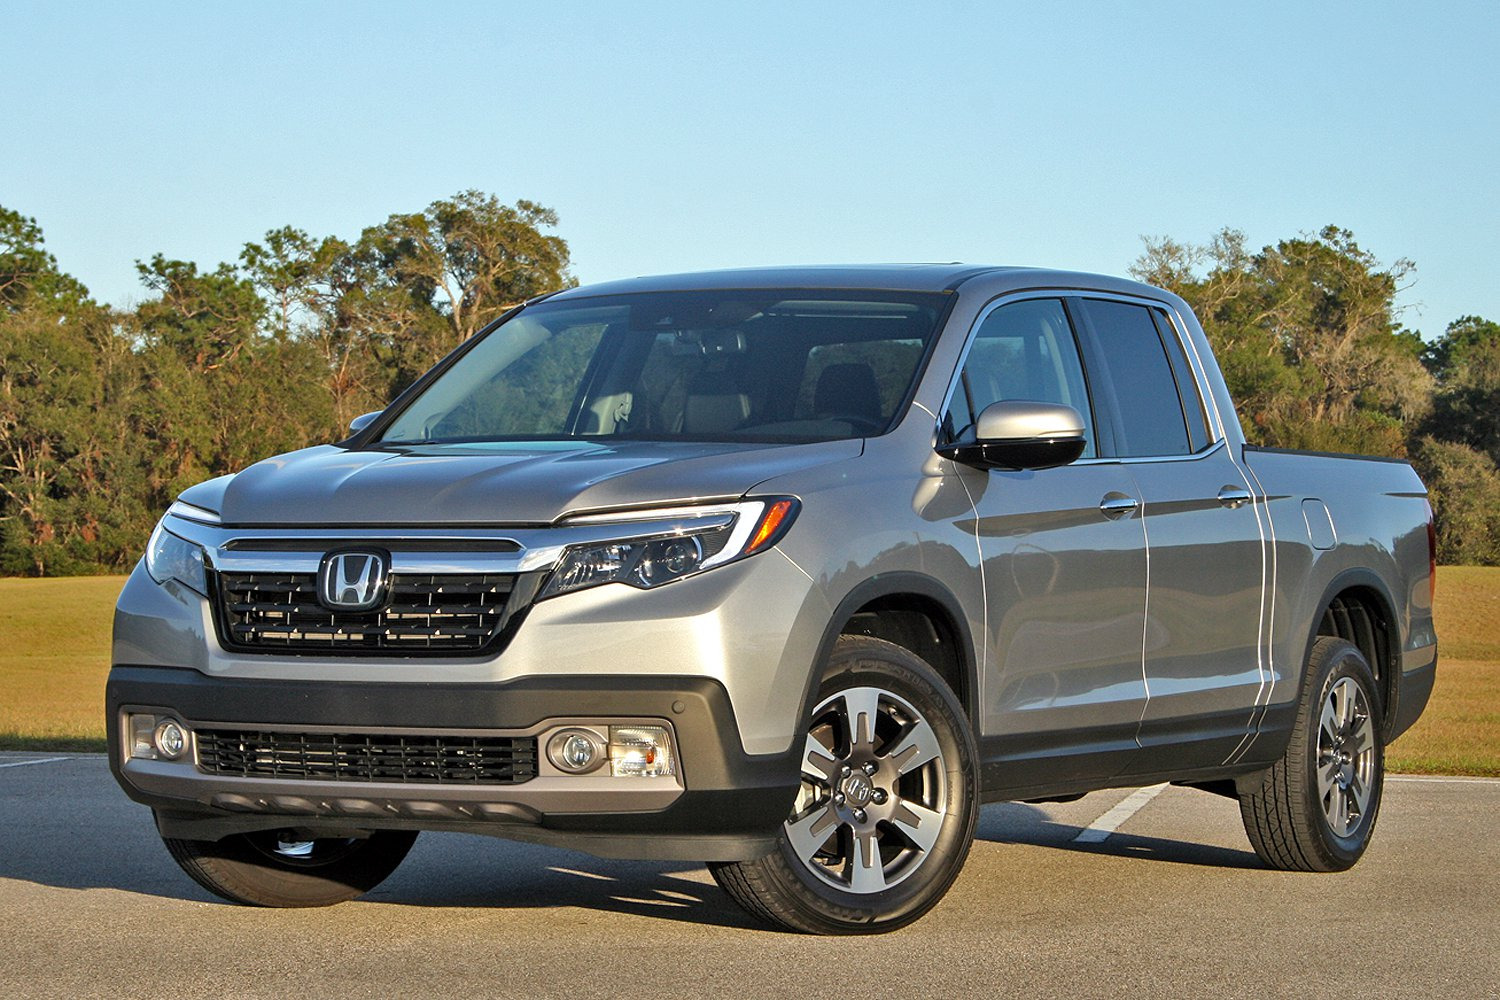 74 The 2020 Honda Ridgeline Overview